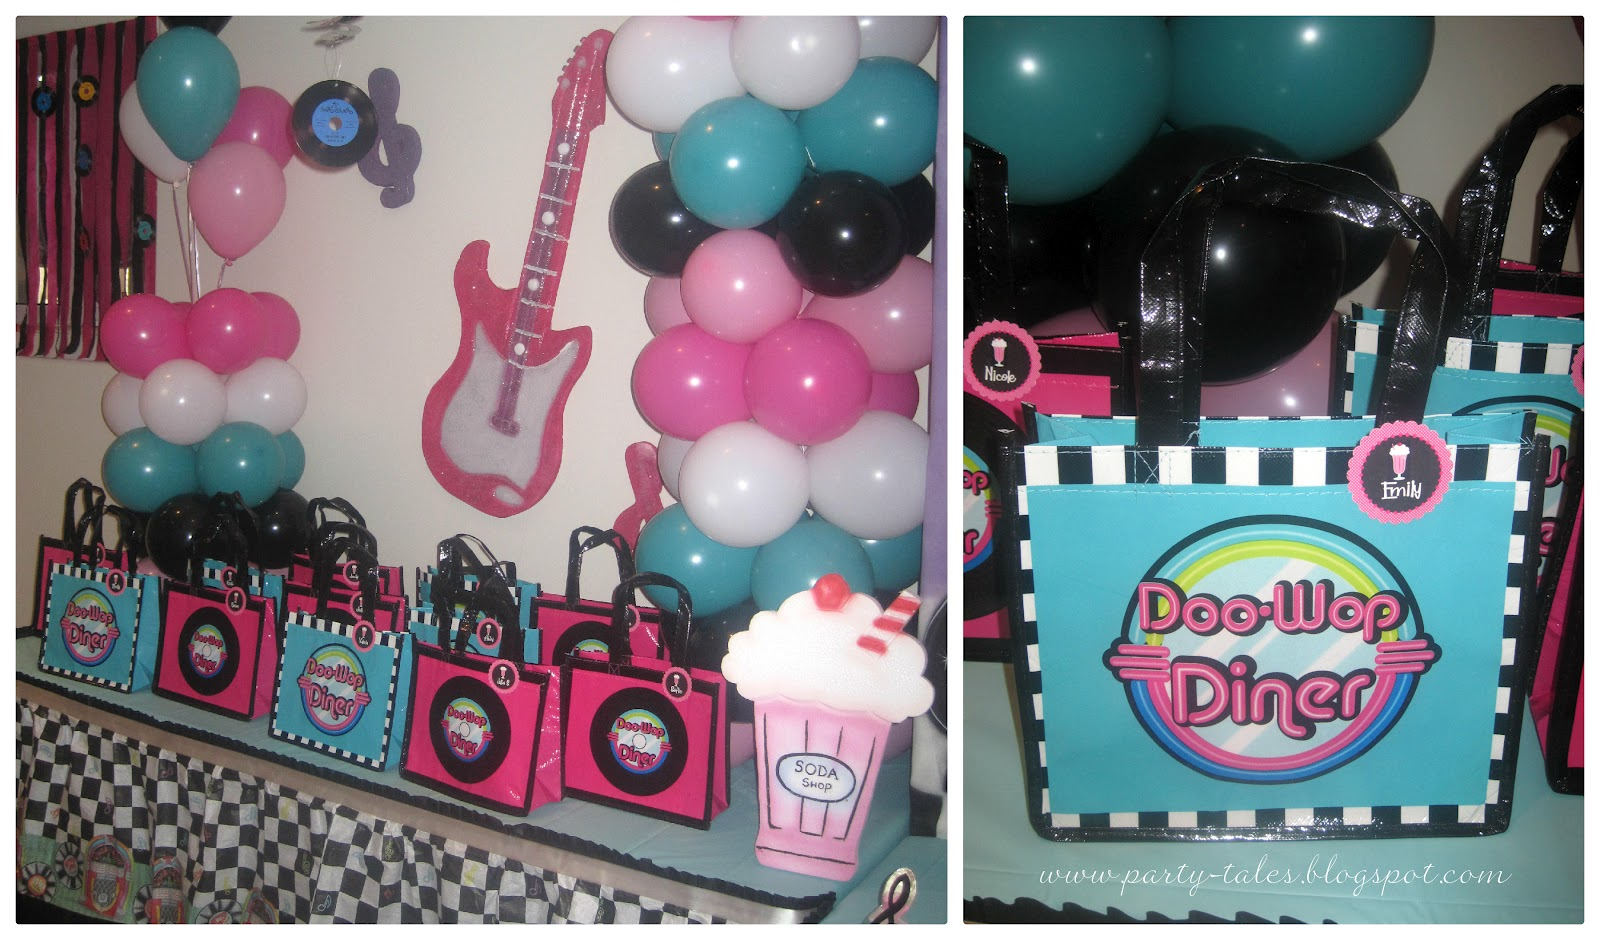 Party tales birthday party 50 39 s diner sock hop part 2 for 50 s party decoration